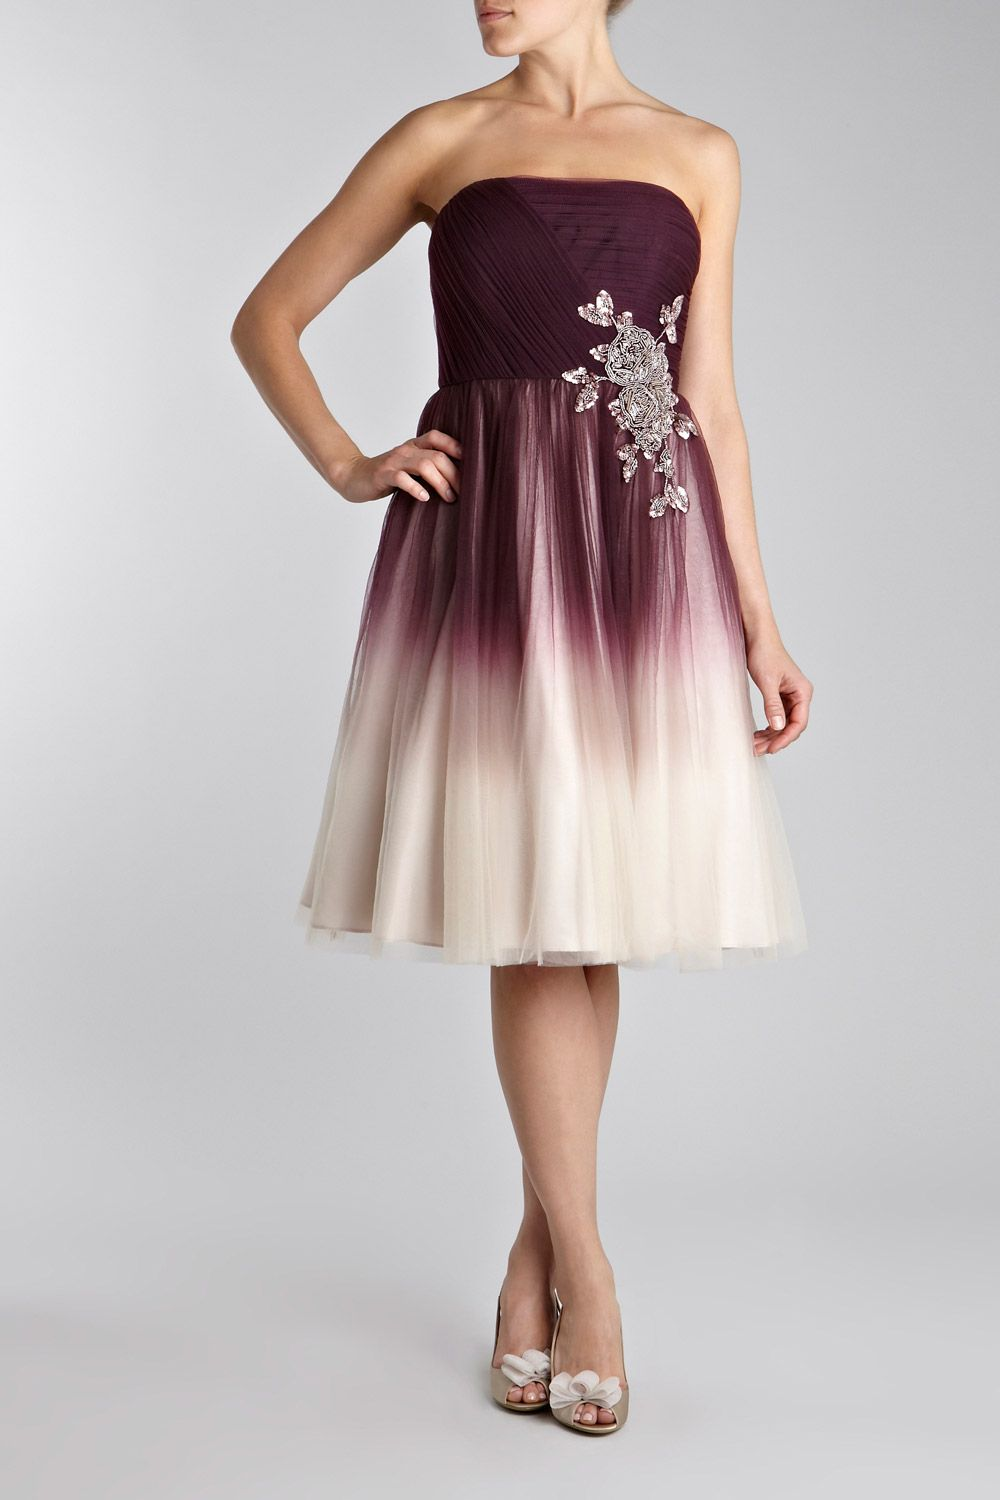 Love this dress even better without the motif thing on the left but